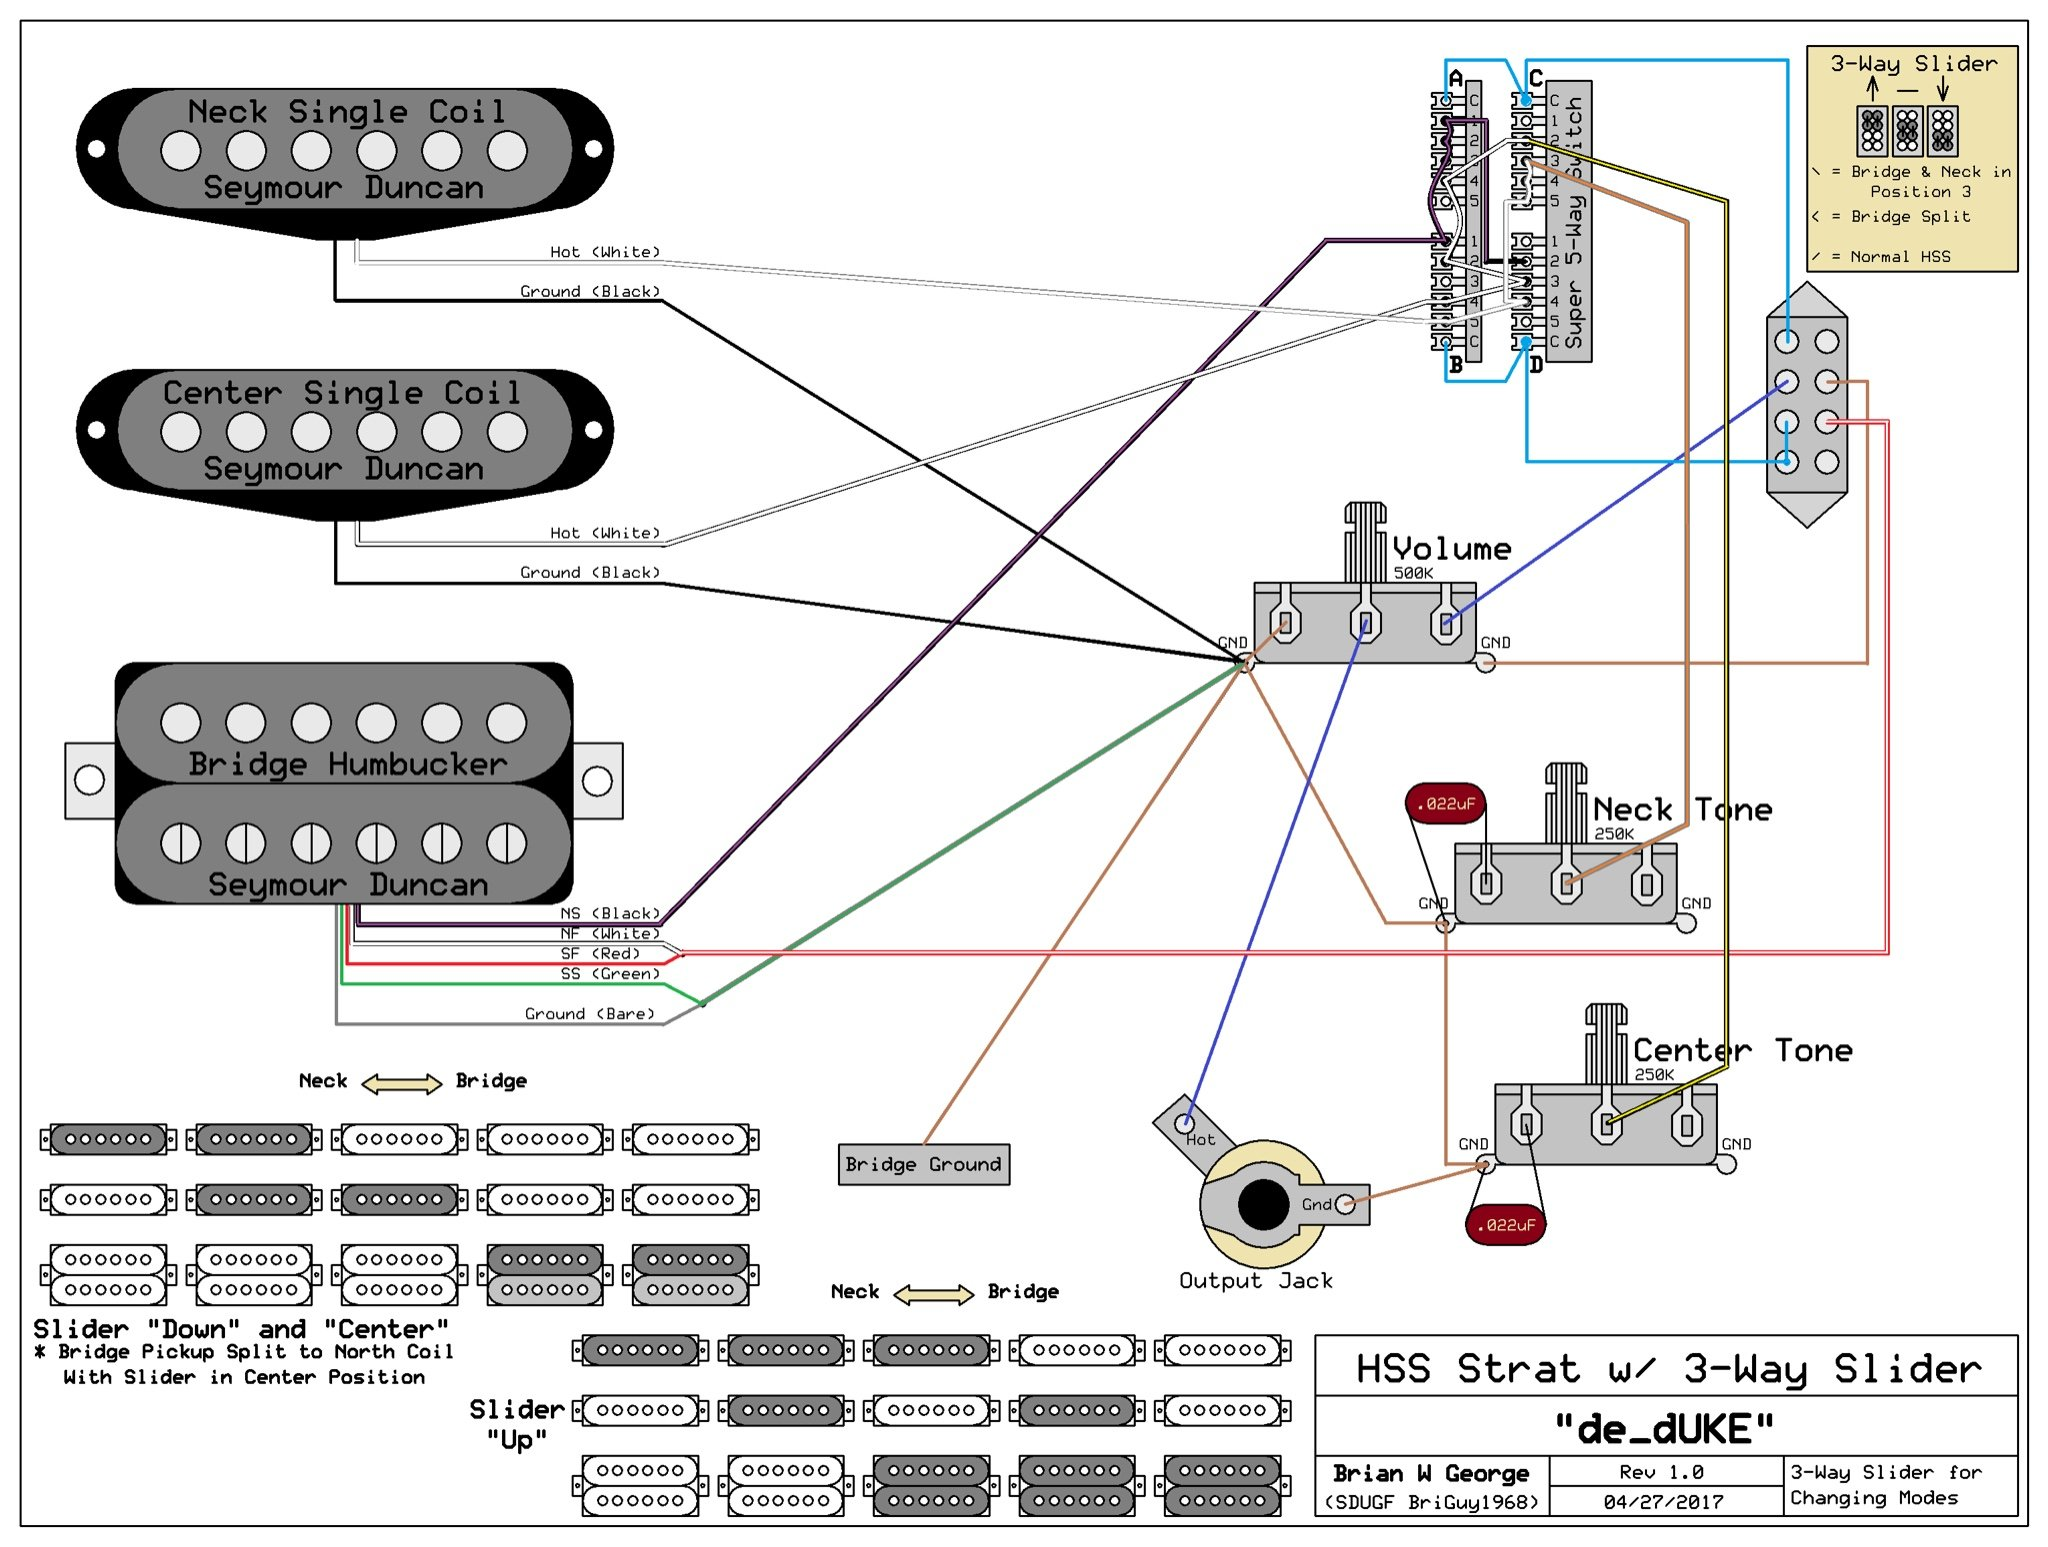 seymour duncan wiring diagram 2 buckers 1 vol 1 tone hss strat wiring diagram for coil split using 3-way switch #13